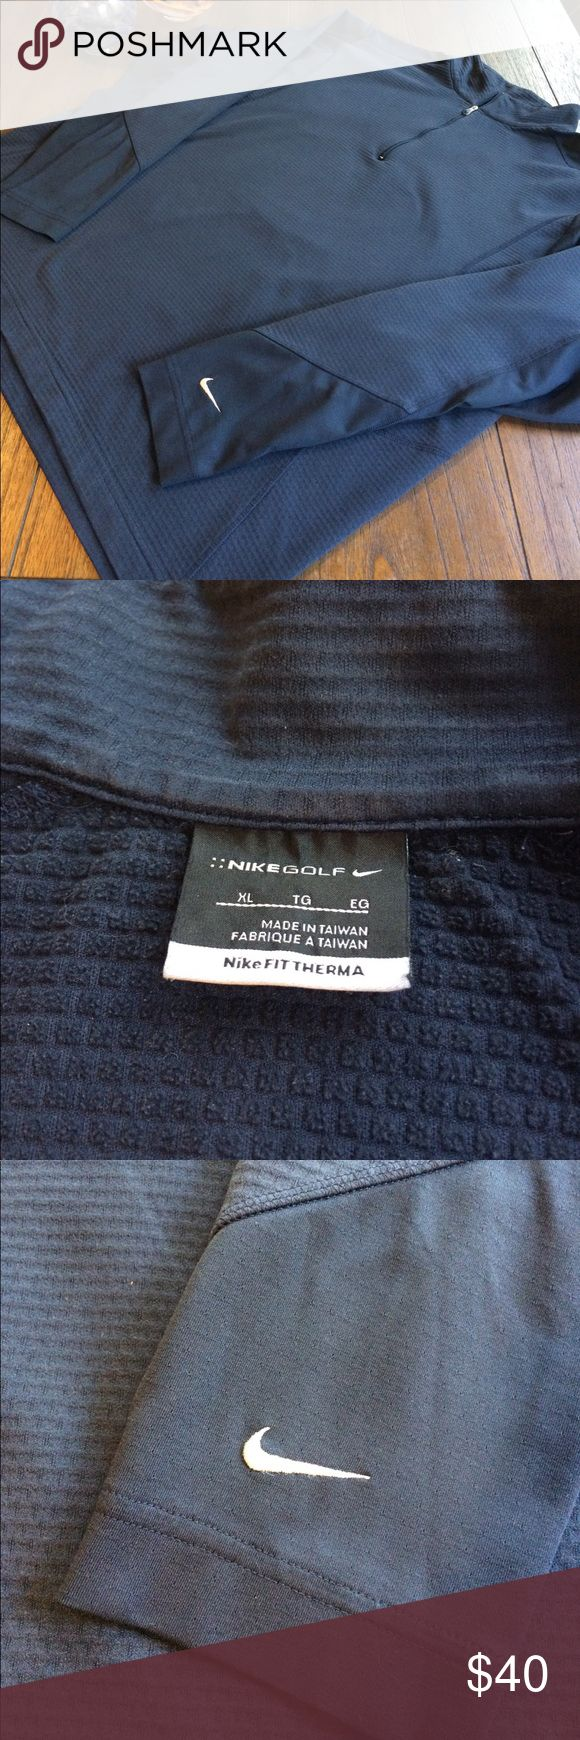 NikeFIT Therma Quarter Zip Golf 🏌 Pullover Nike Golf 🏌 NikeFIT Therma Quarter Zip Pullover in EUC. Navy Blue color with Therma Waffle interior to keep warm and dry on the golf course. Embroidered Swoosh logo on bottom sleeve. Nike Jackets & Coats Performance Jackets